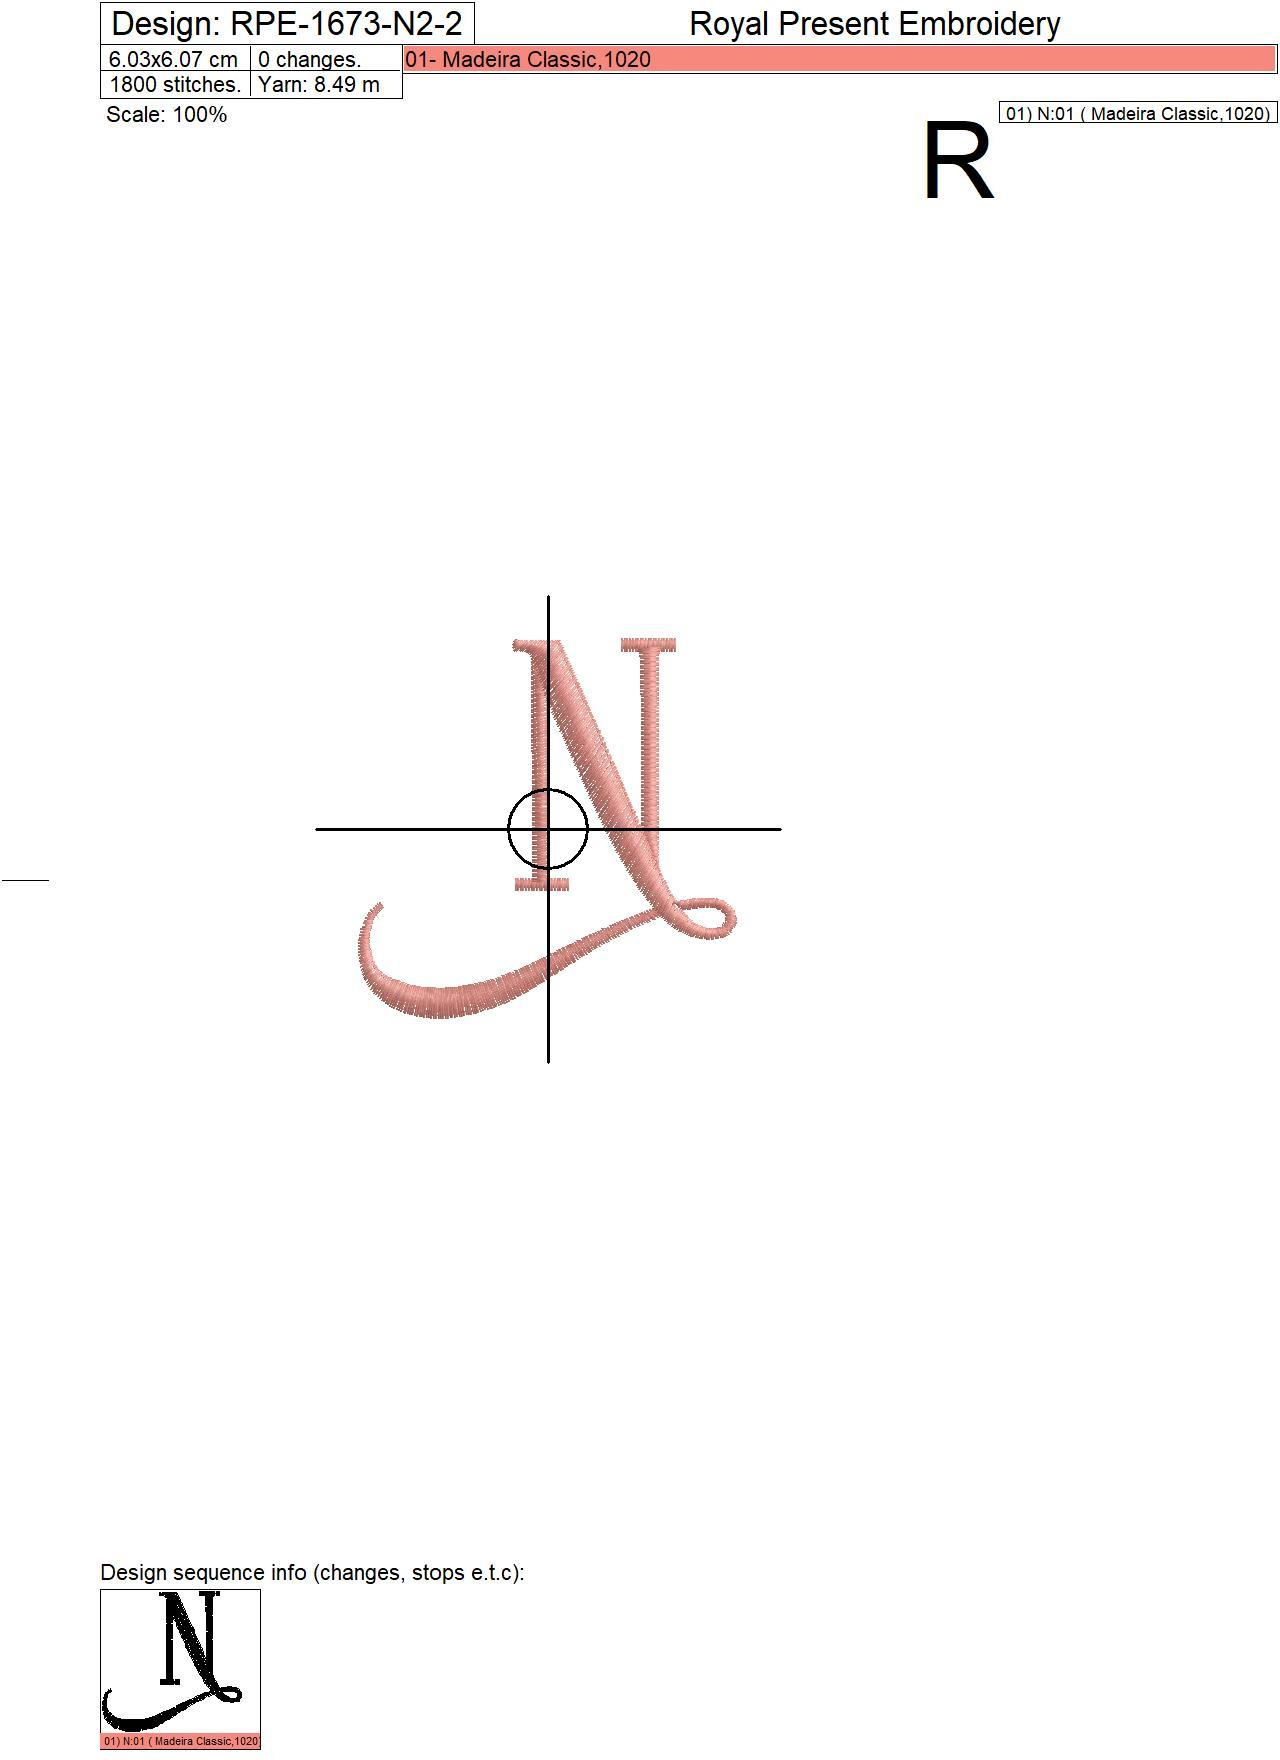 Capital Letter N Embroidery design V2